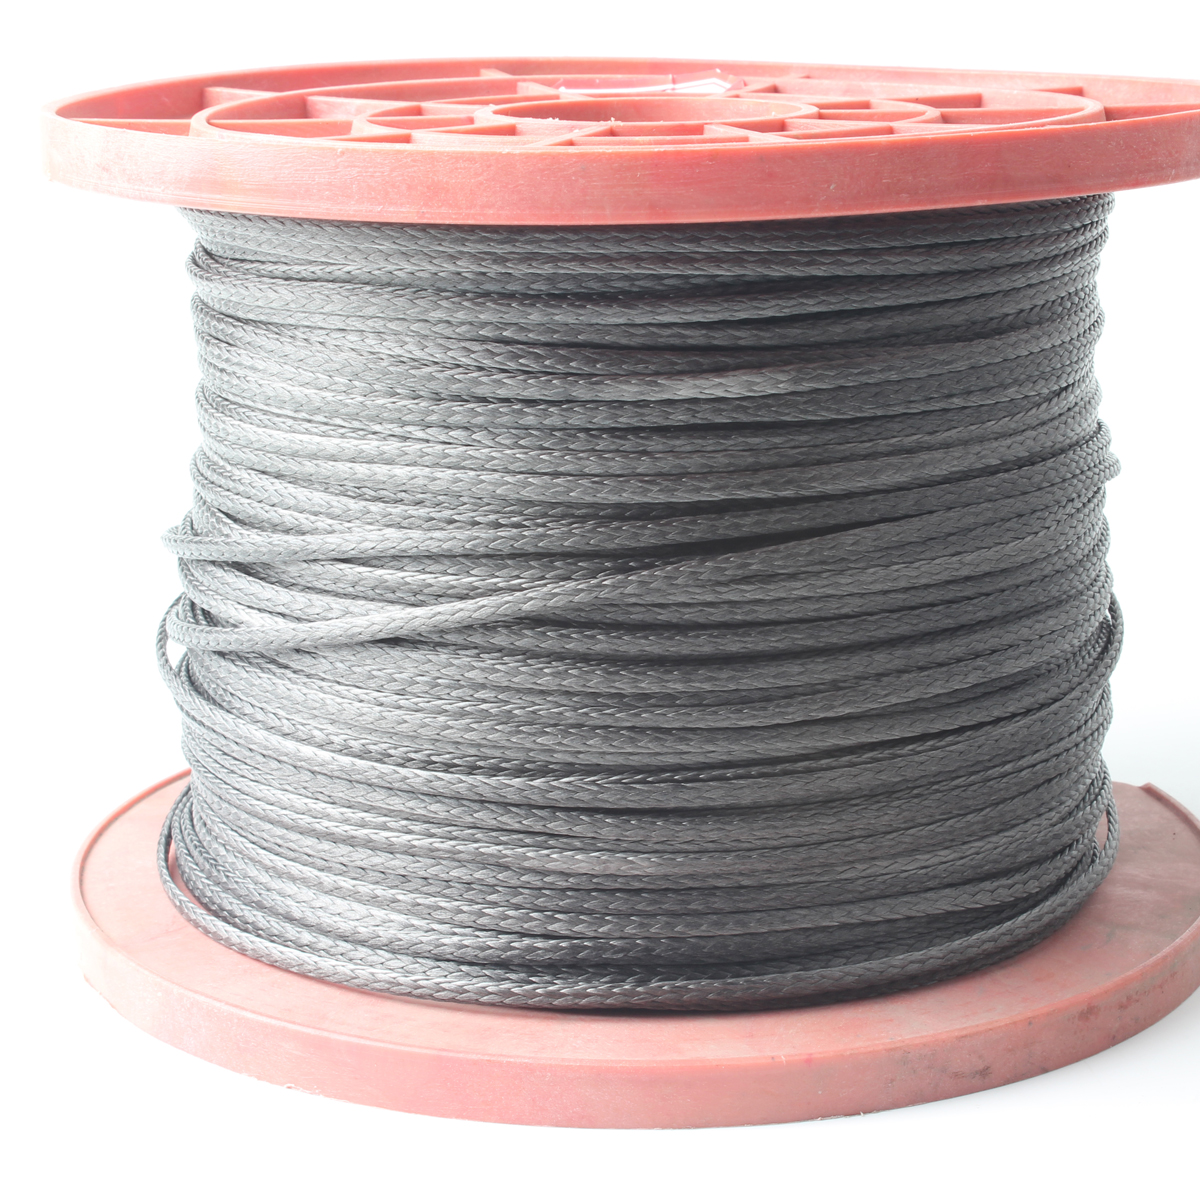 "3mm 1/8"" UHMWPE hollow braided hammock ridge line"